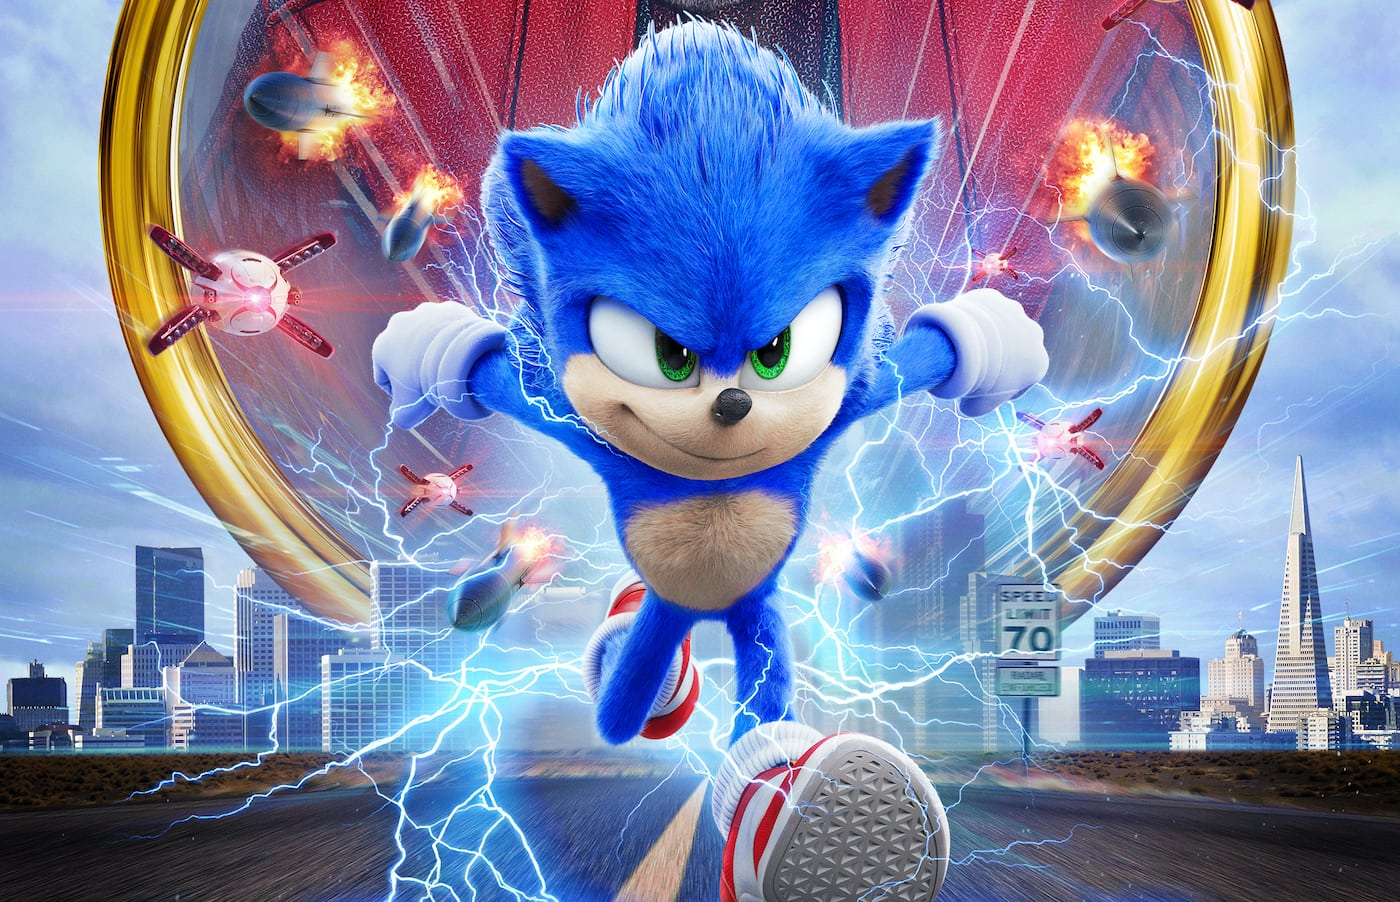 Sonic The Hedgehog S Second Movie Trailer Looks Uh Good Gayming Magazine